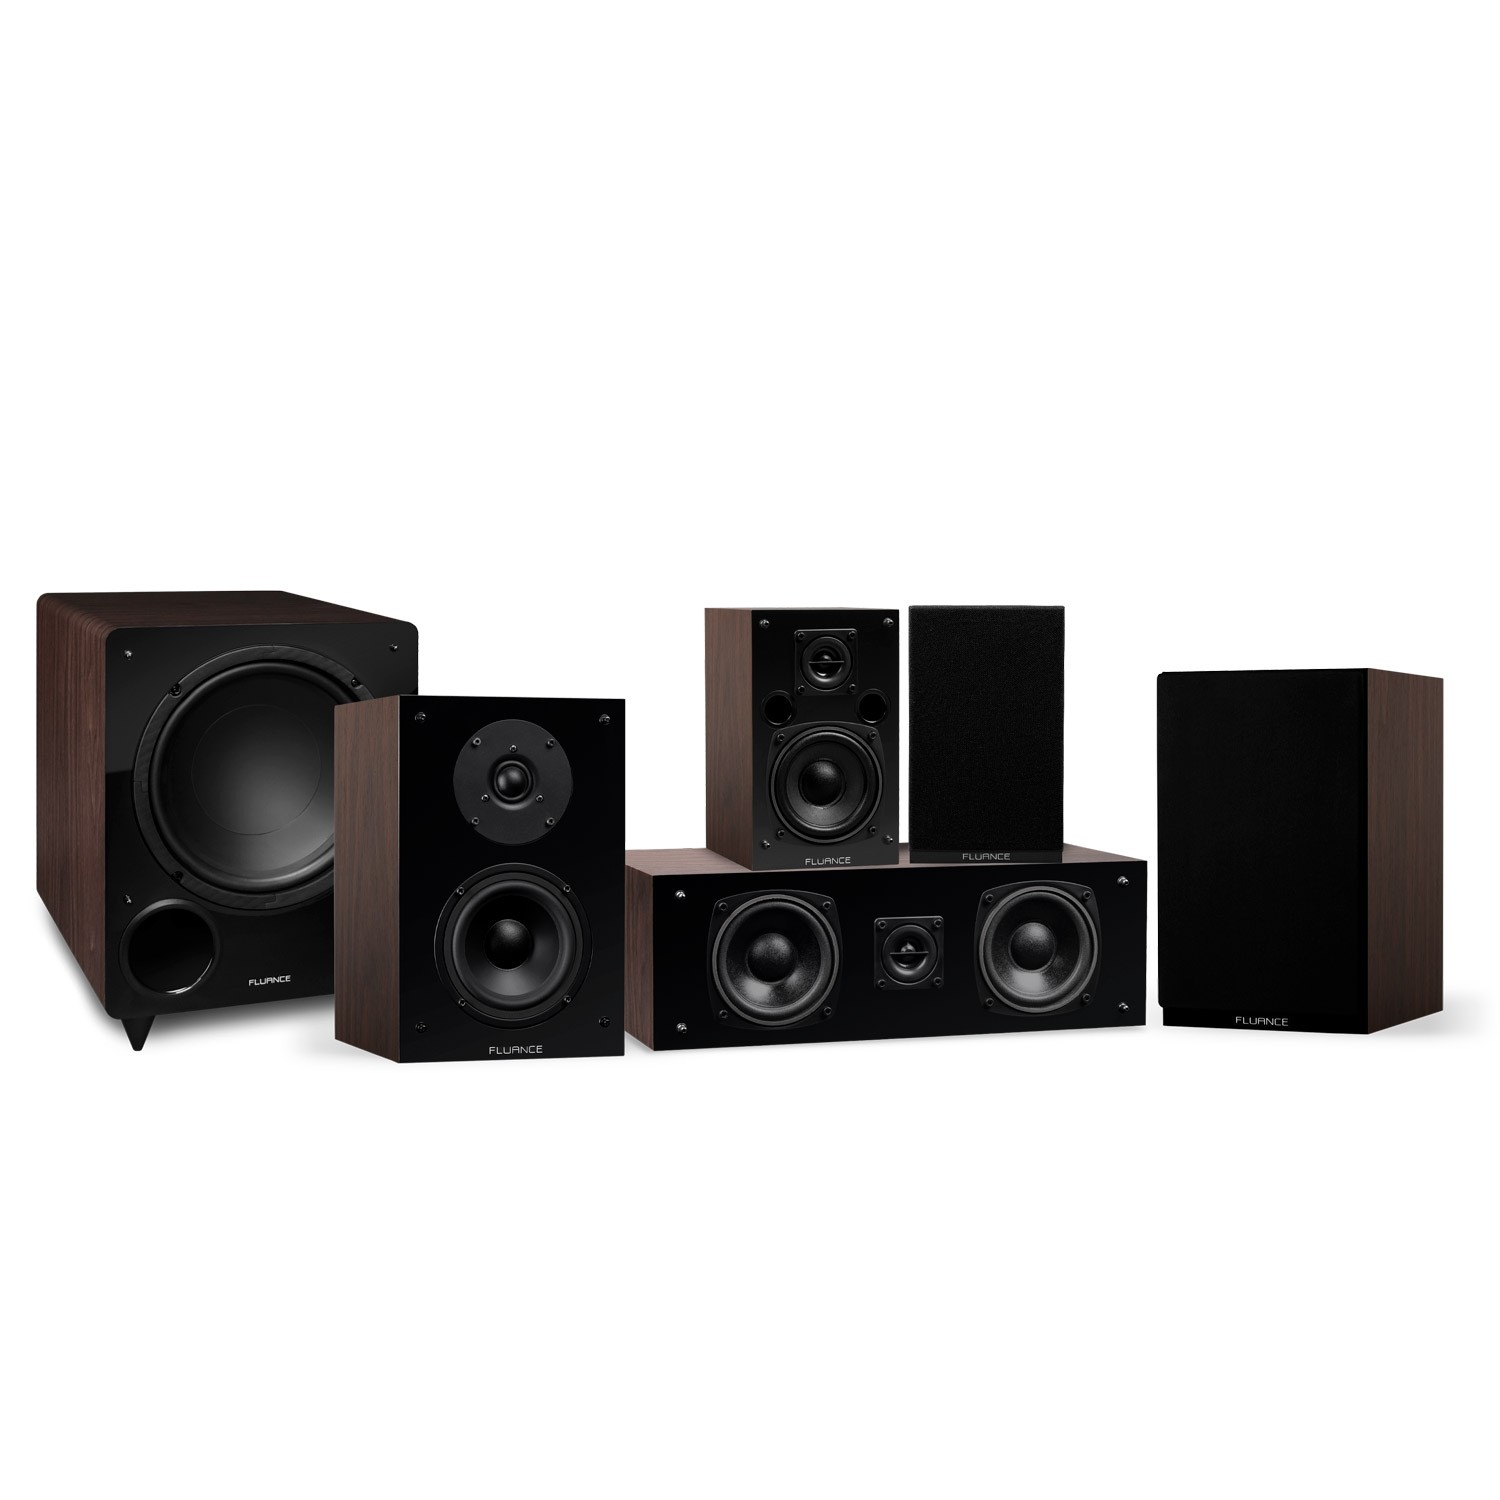 Elite Series Compact Surround Sound Home Theater 5.1 Channel Speaker System